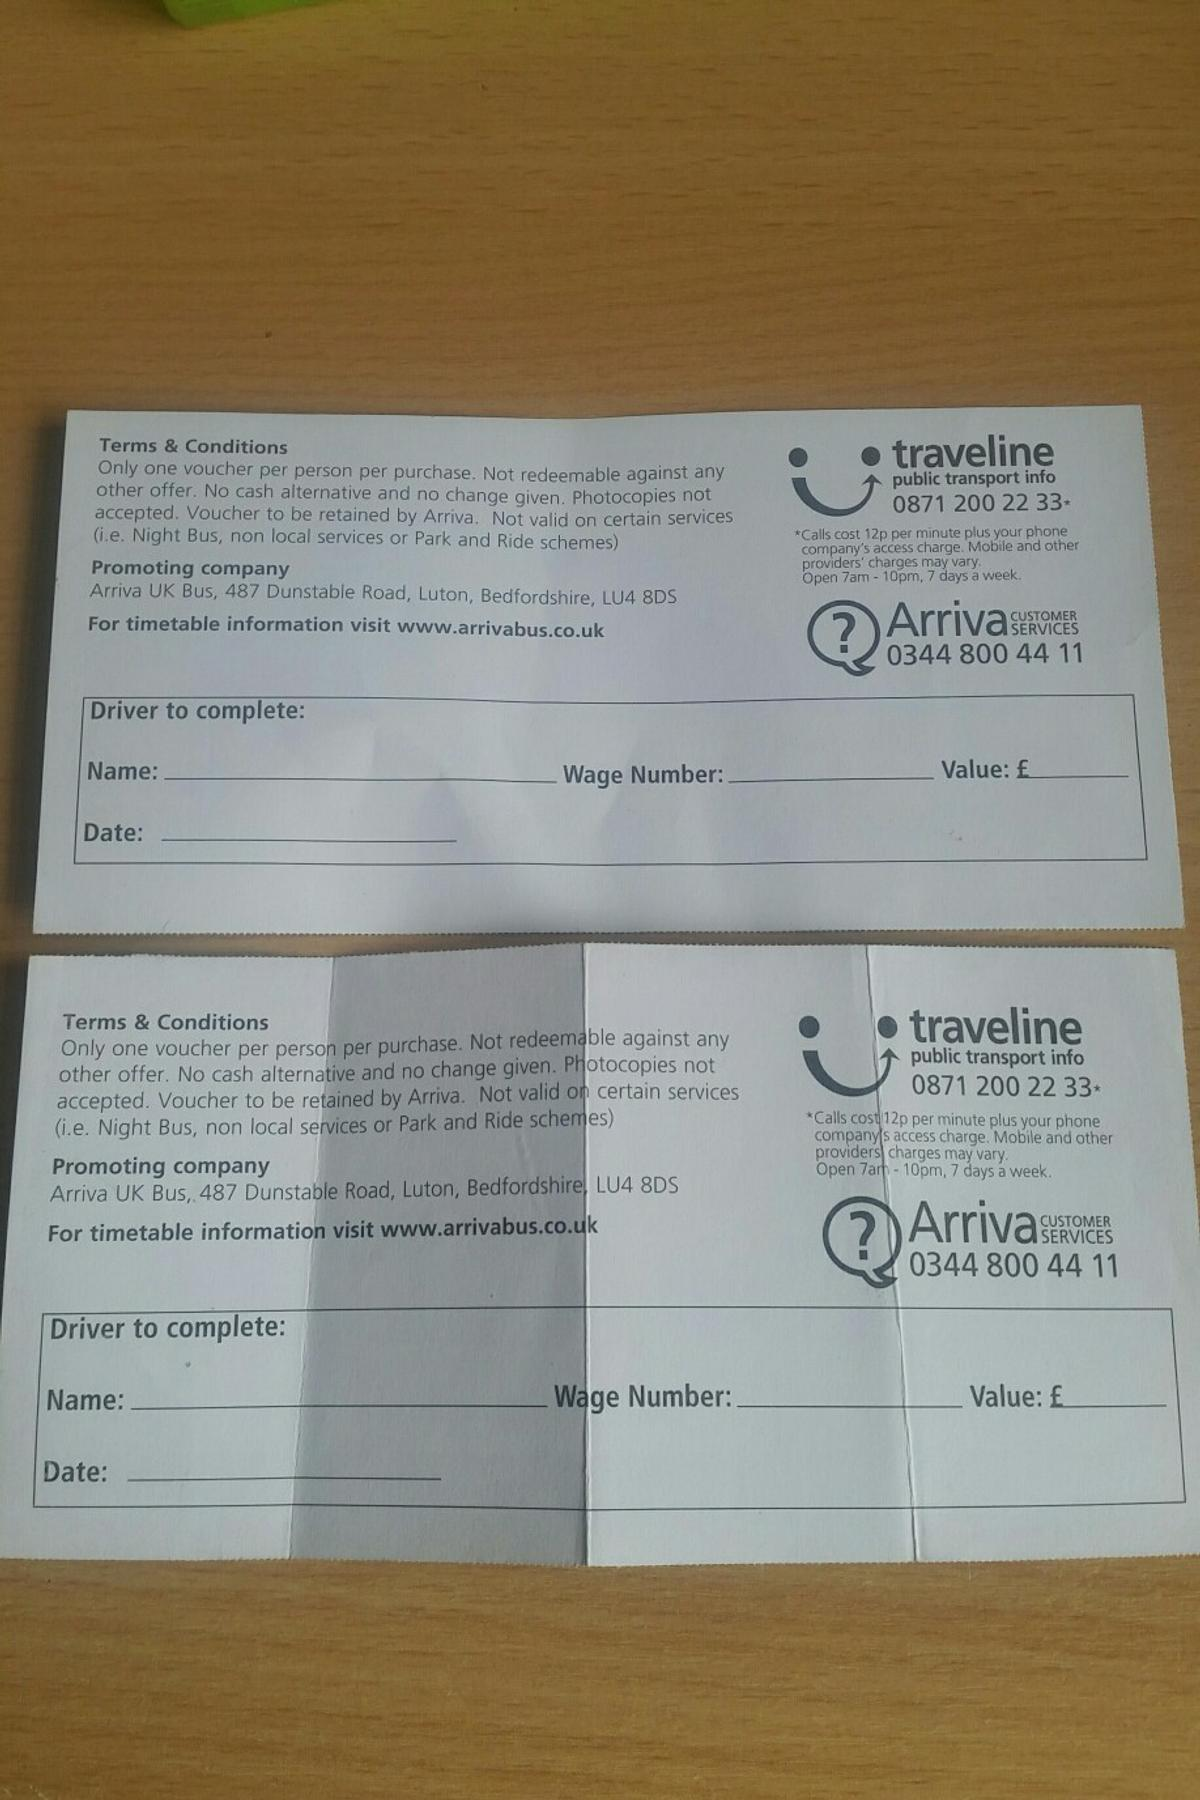 2 x Weekly Merseyside bus passes in St Helens for free for